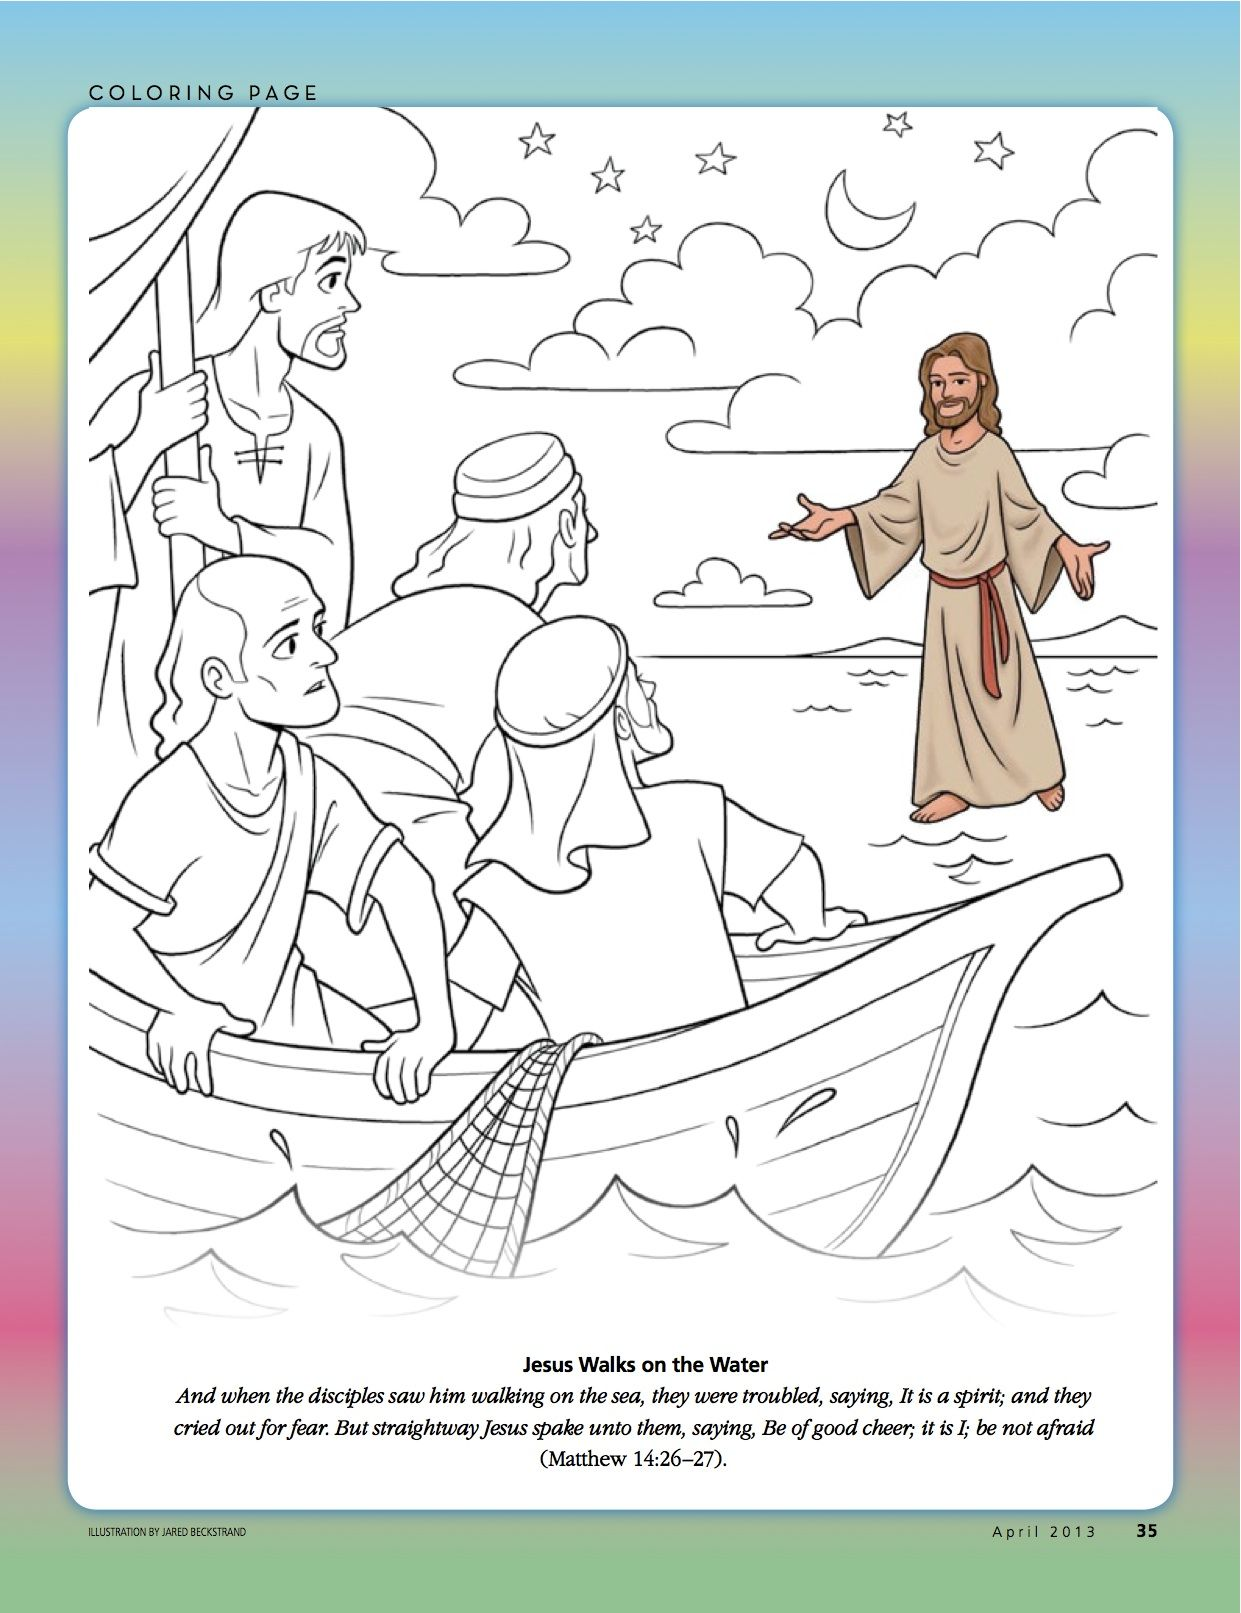 Another Coloring Page From The Friend